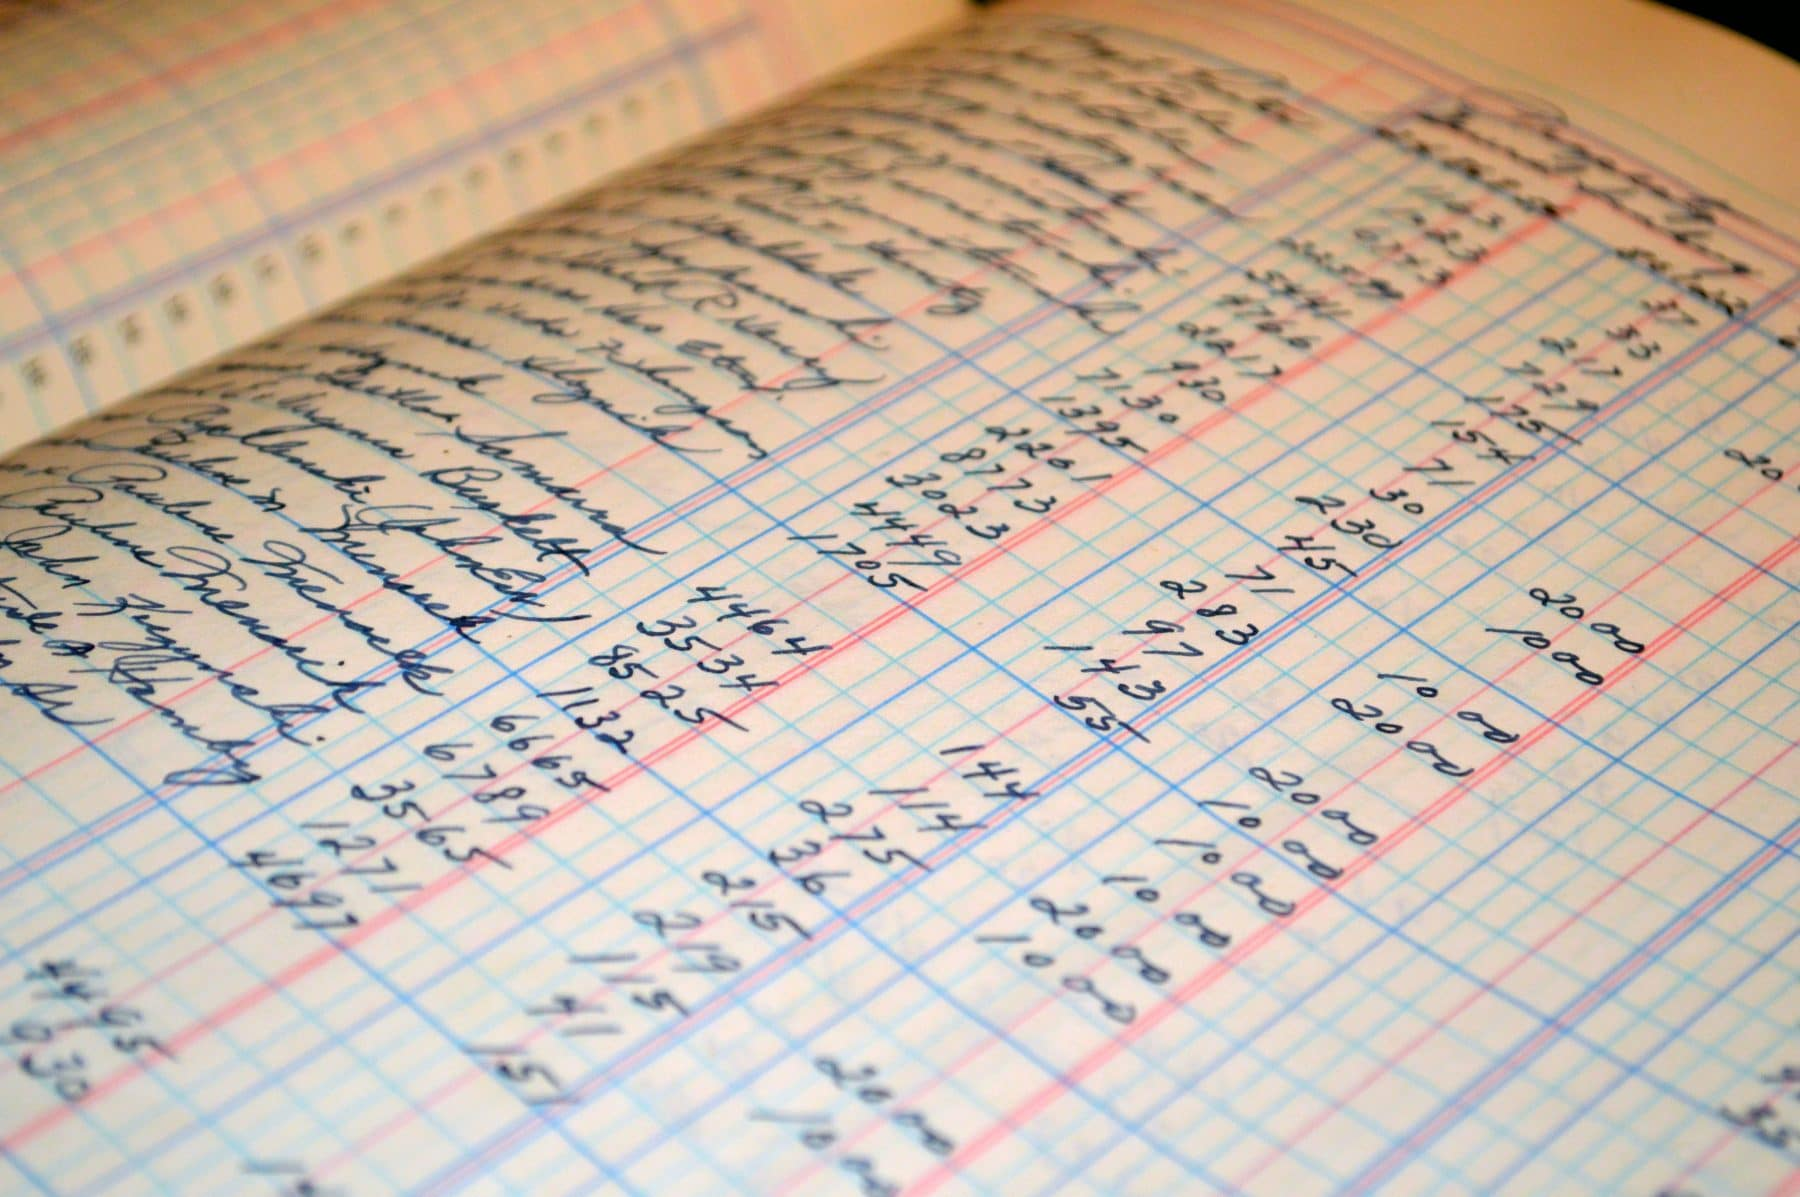 Bookkeeper vs. Accountant: What Is the Difference? Here's What You Need to Know